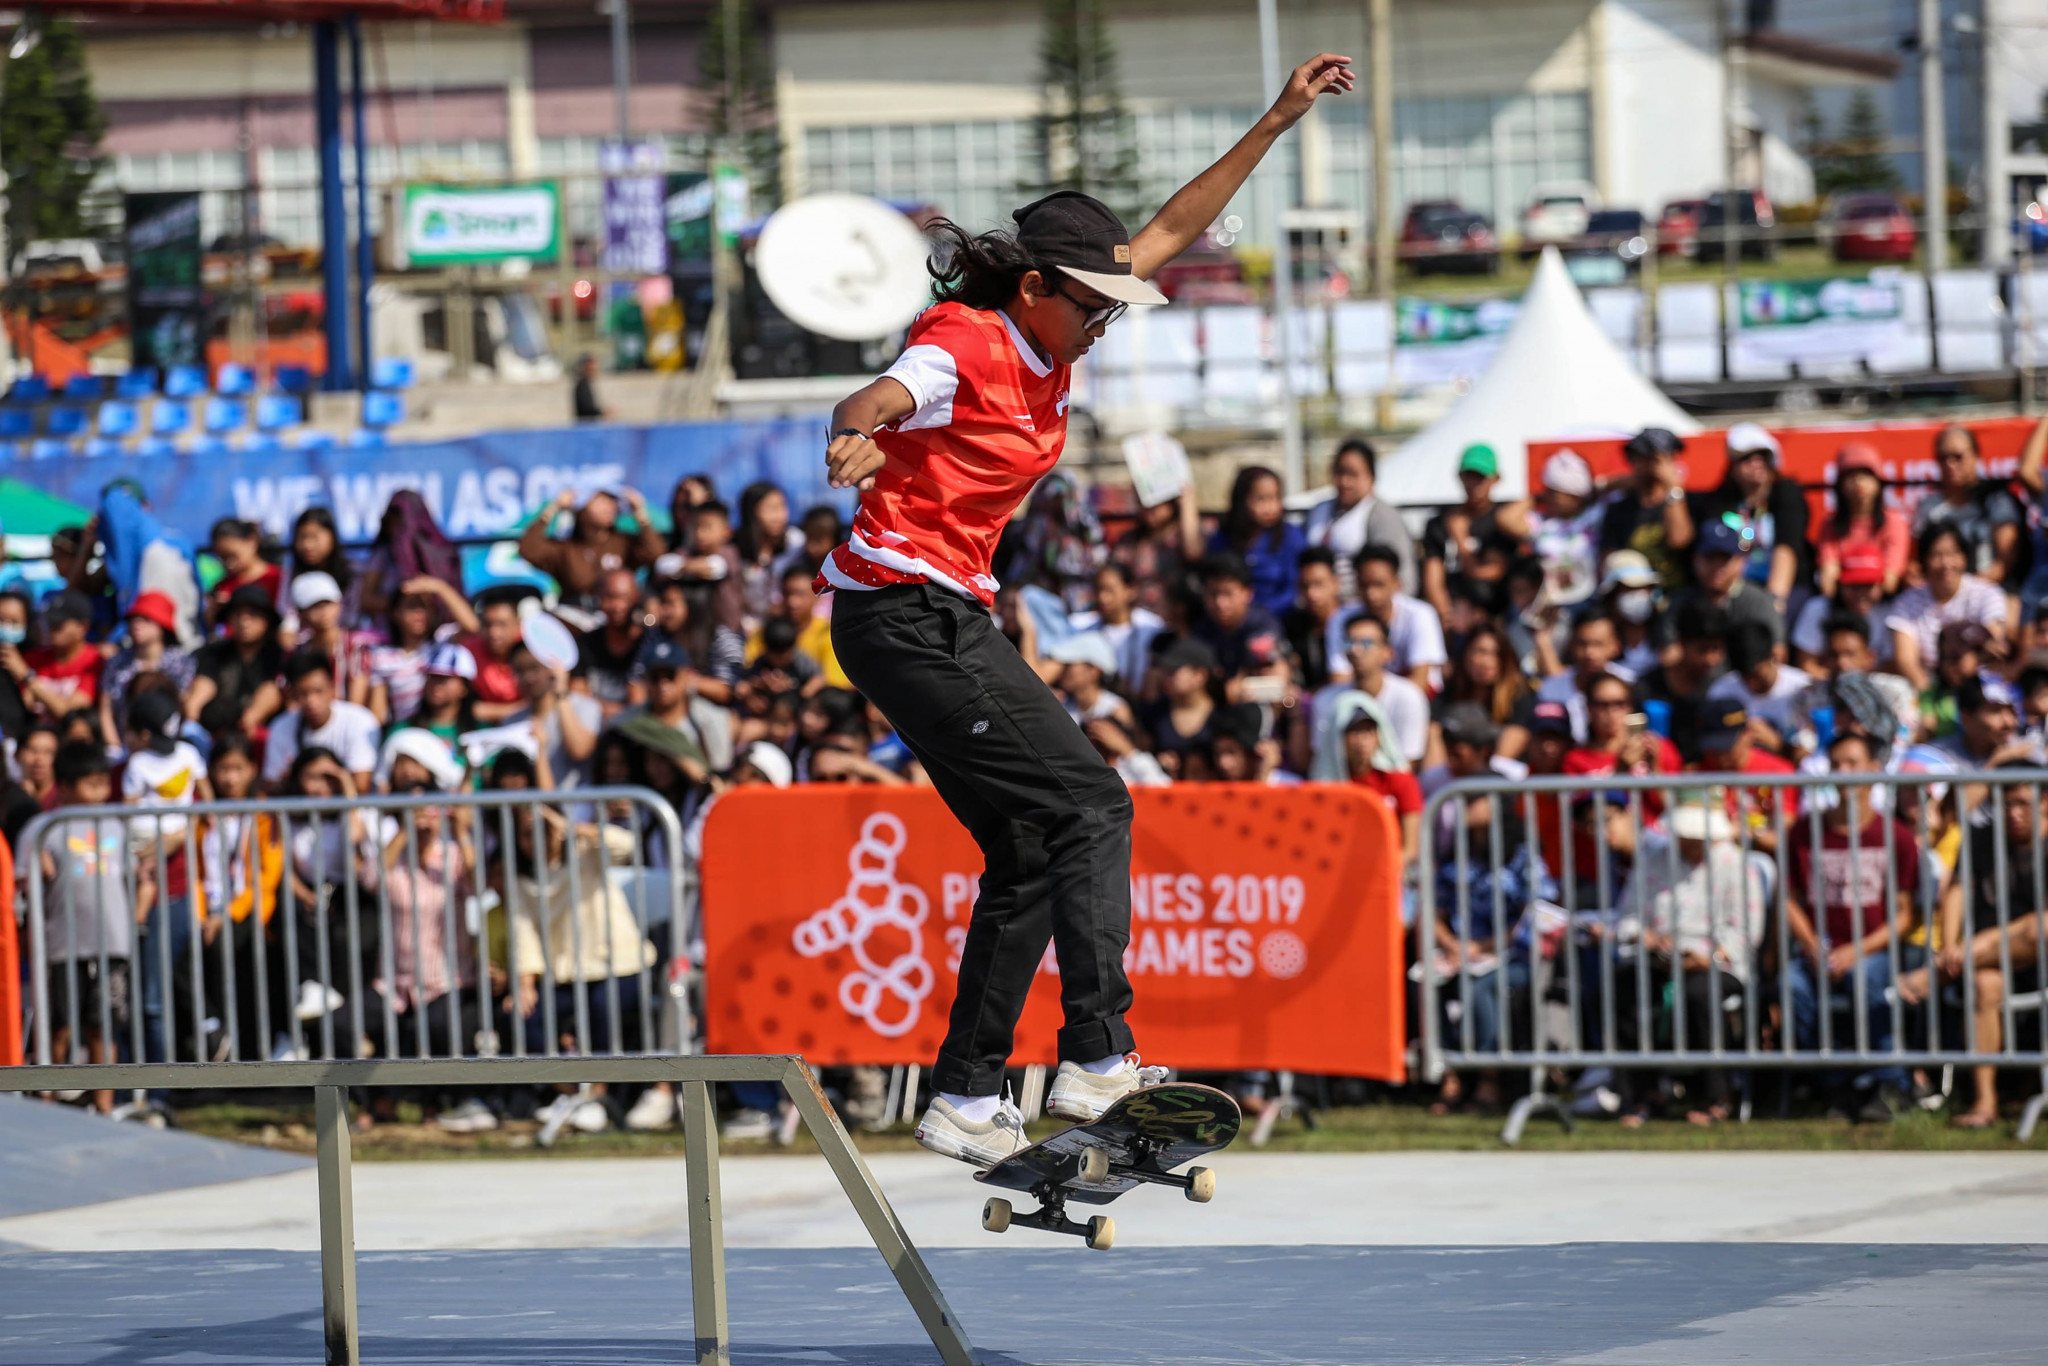 Organisers of this month's Asian Street Skateboarding Continental Championships in Singapore have advised participants to withhold travel plans due to the spread of coronavirus ©Getty Images